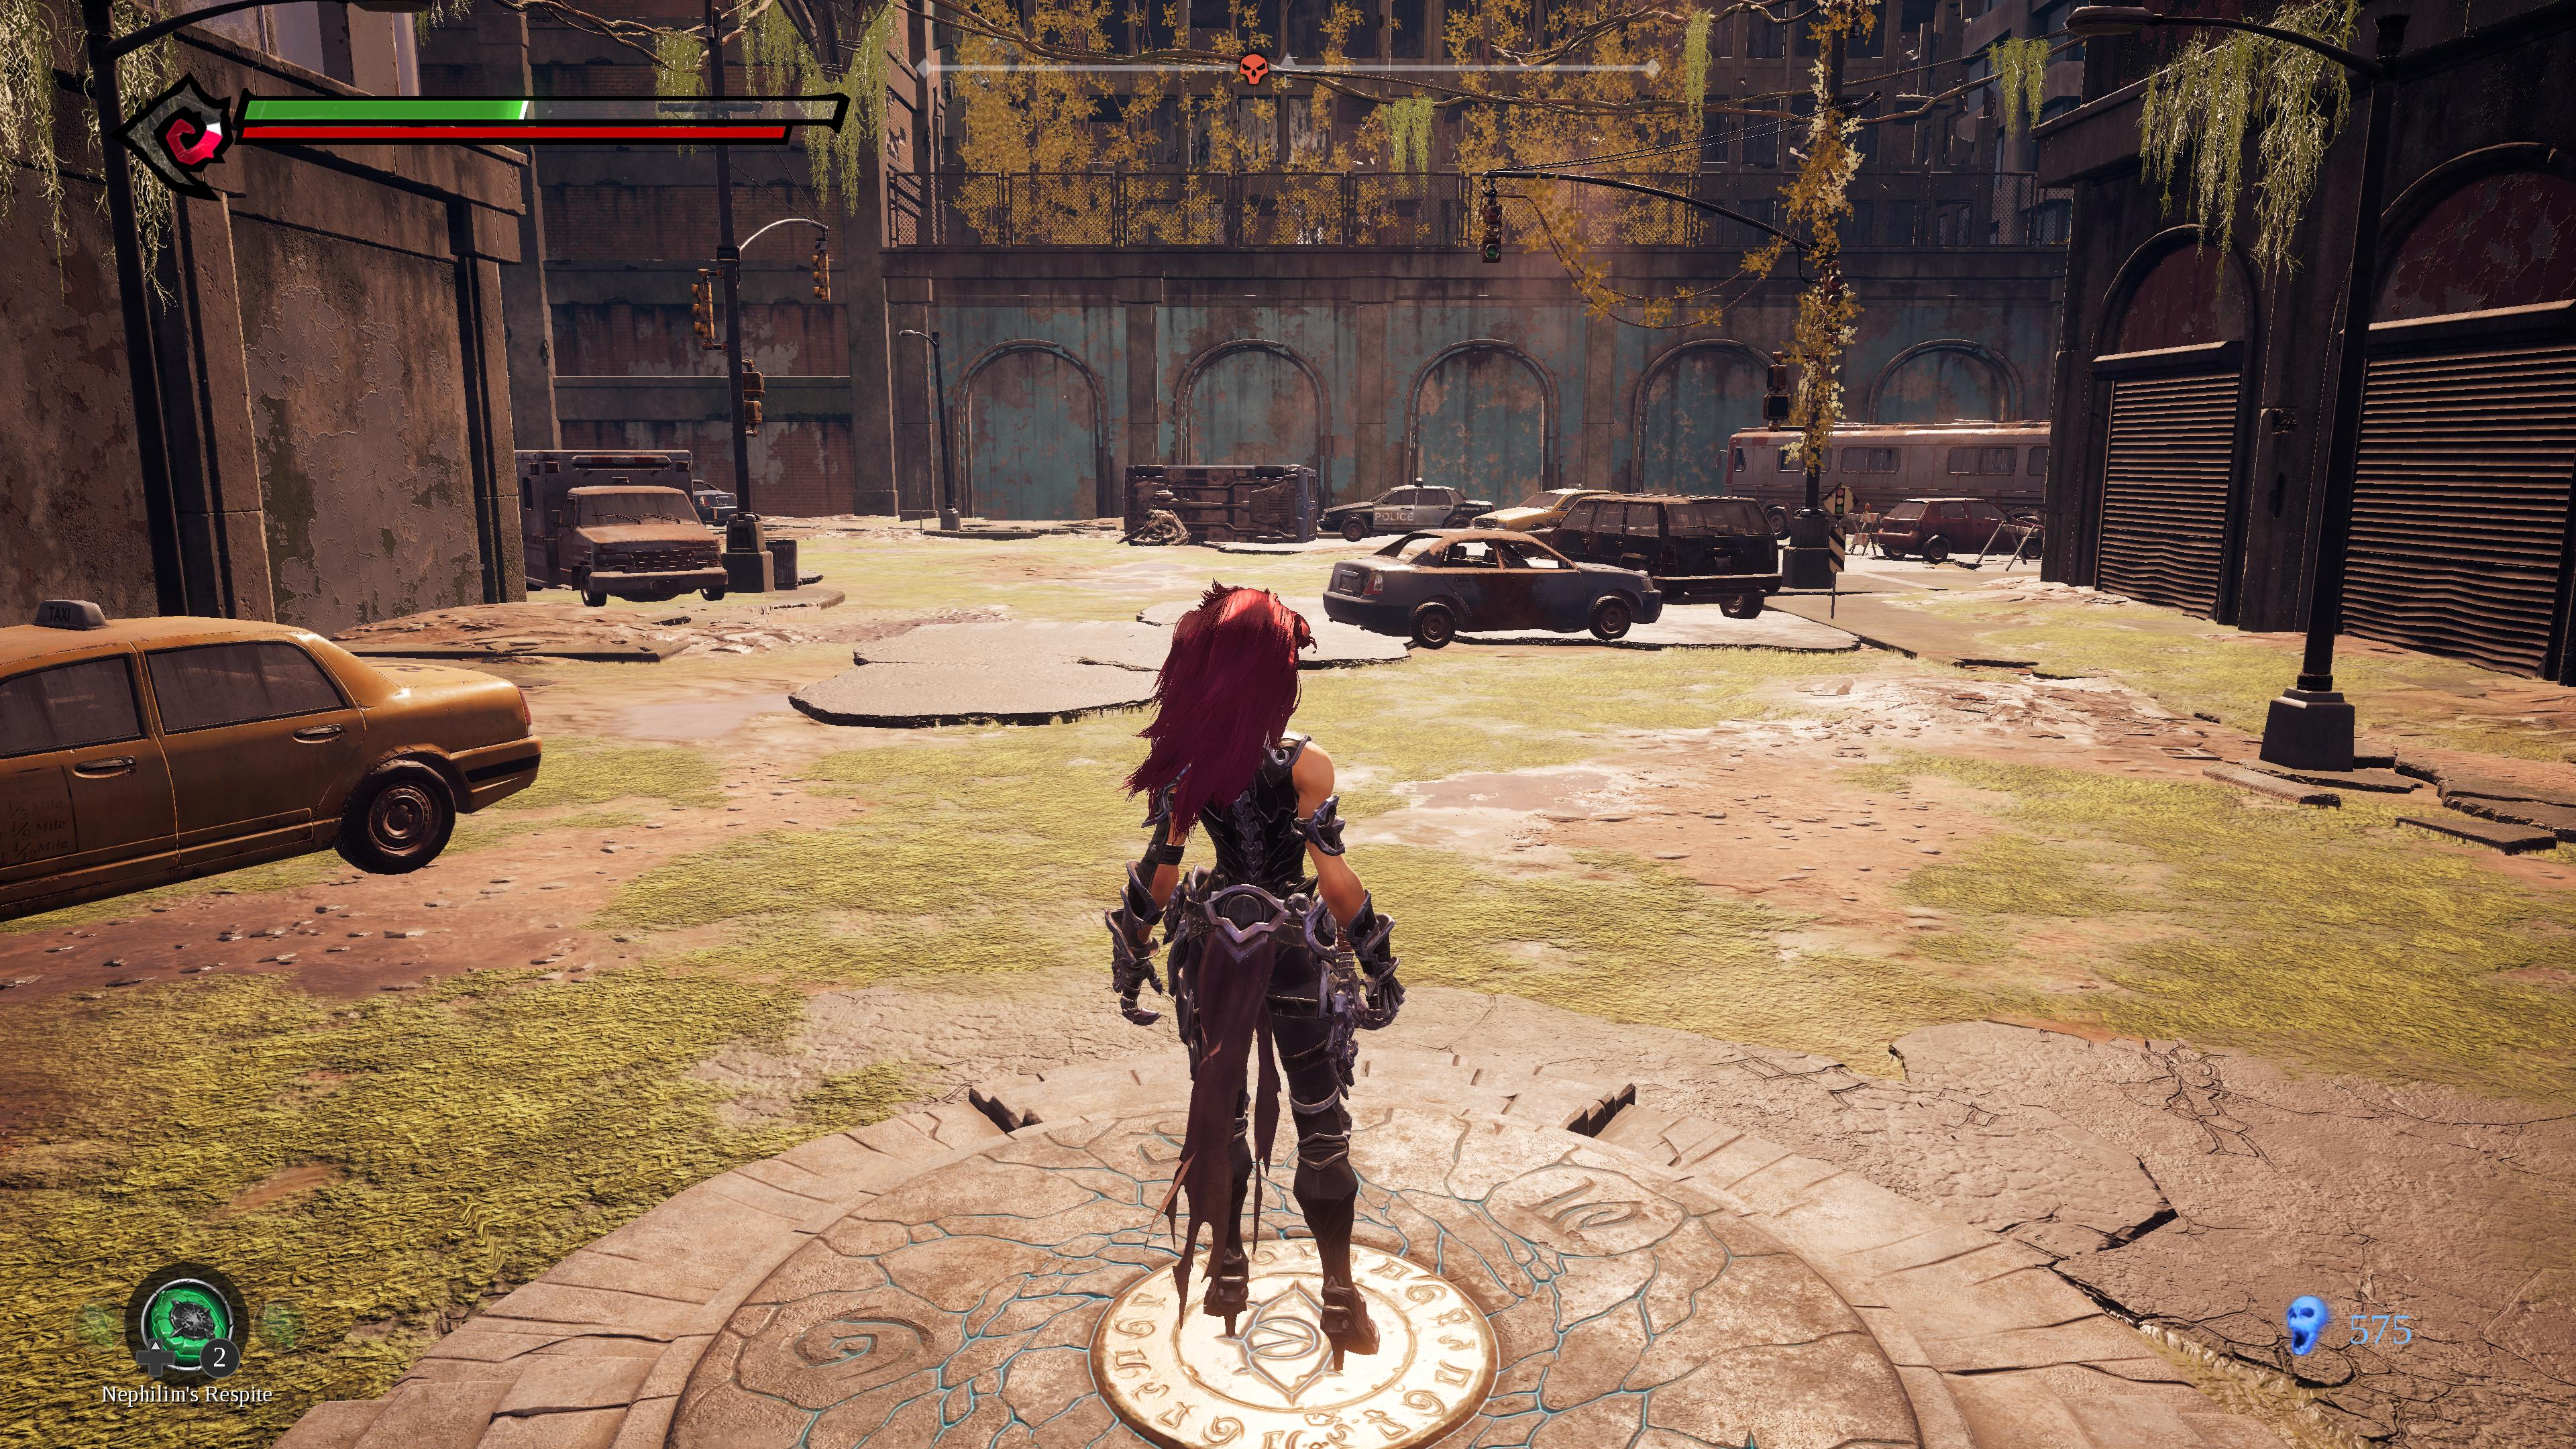 Darksiders 3 PC Performance Explored: Fury Free Edition